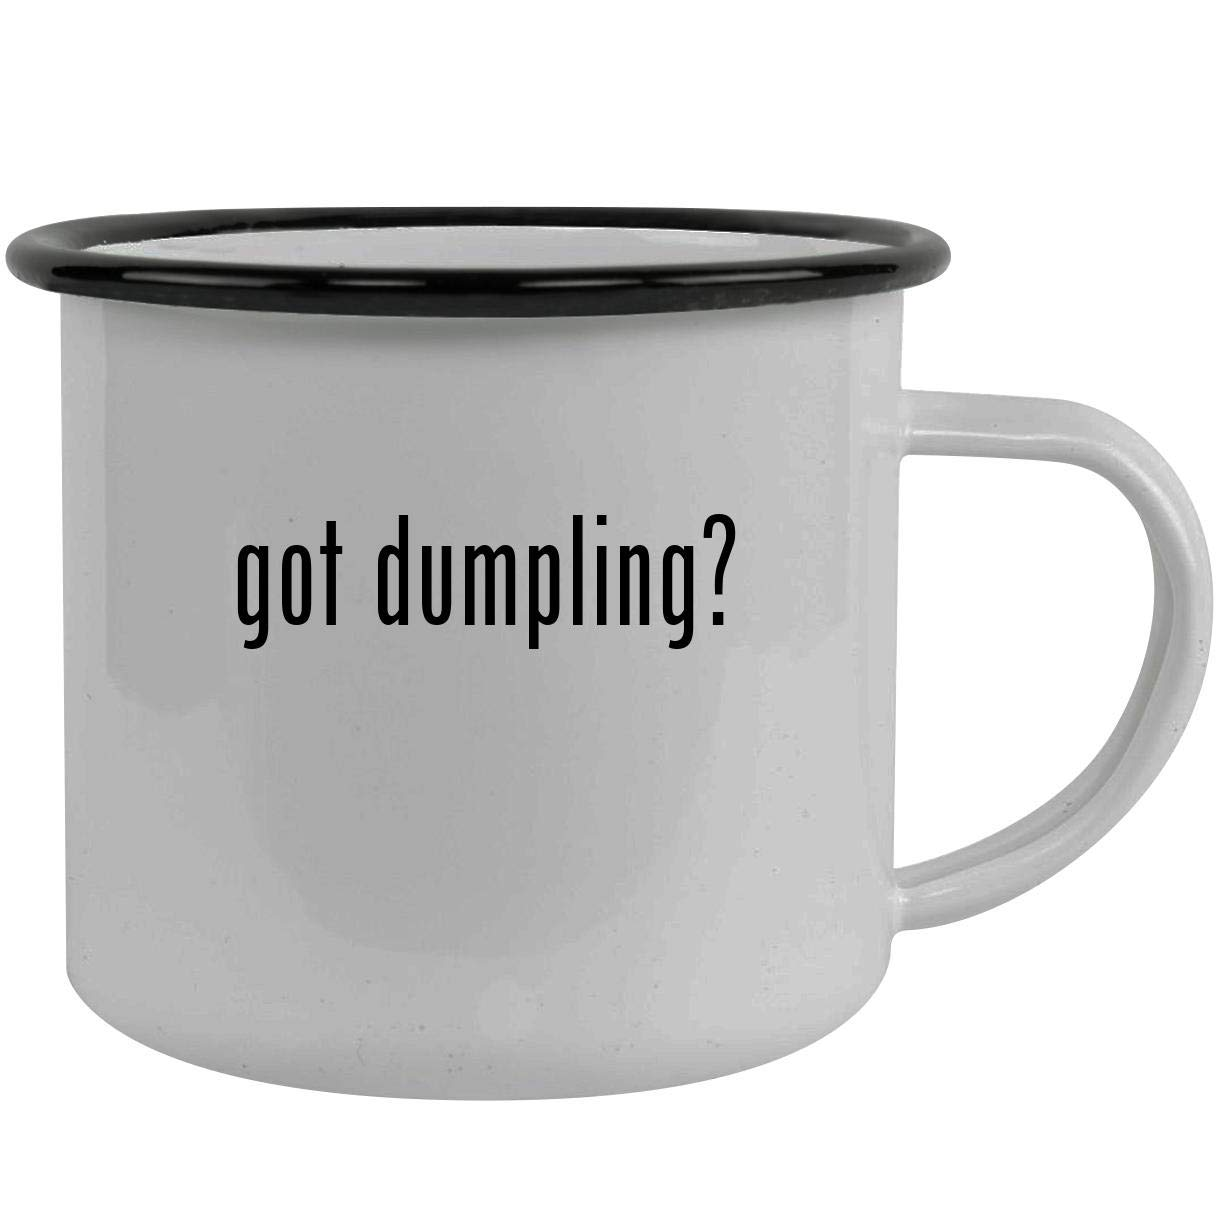 got dumpling? - Stainless Steel 12oz Camping Mug, Black